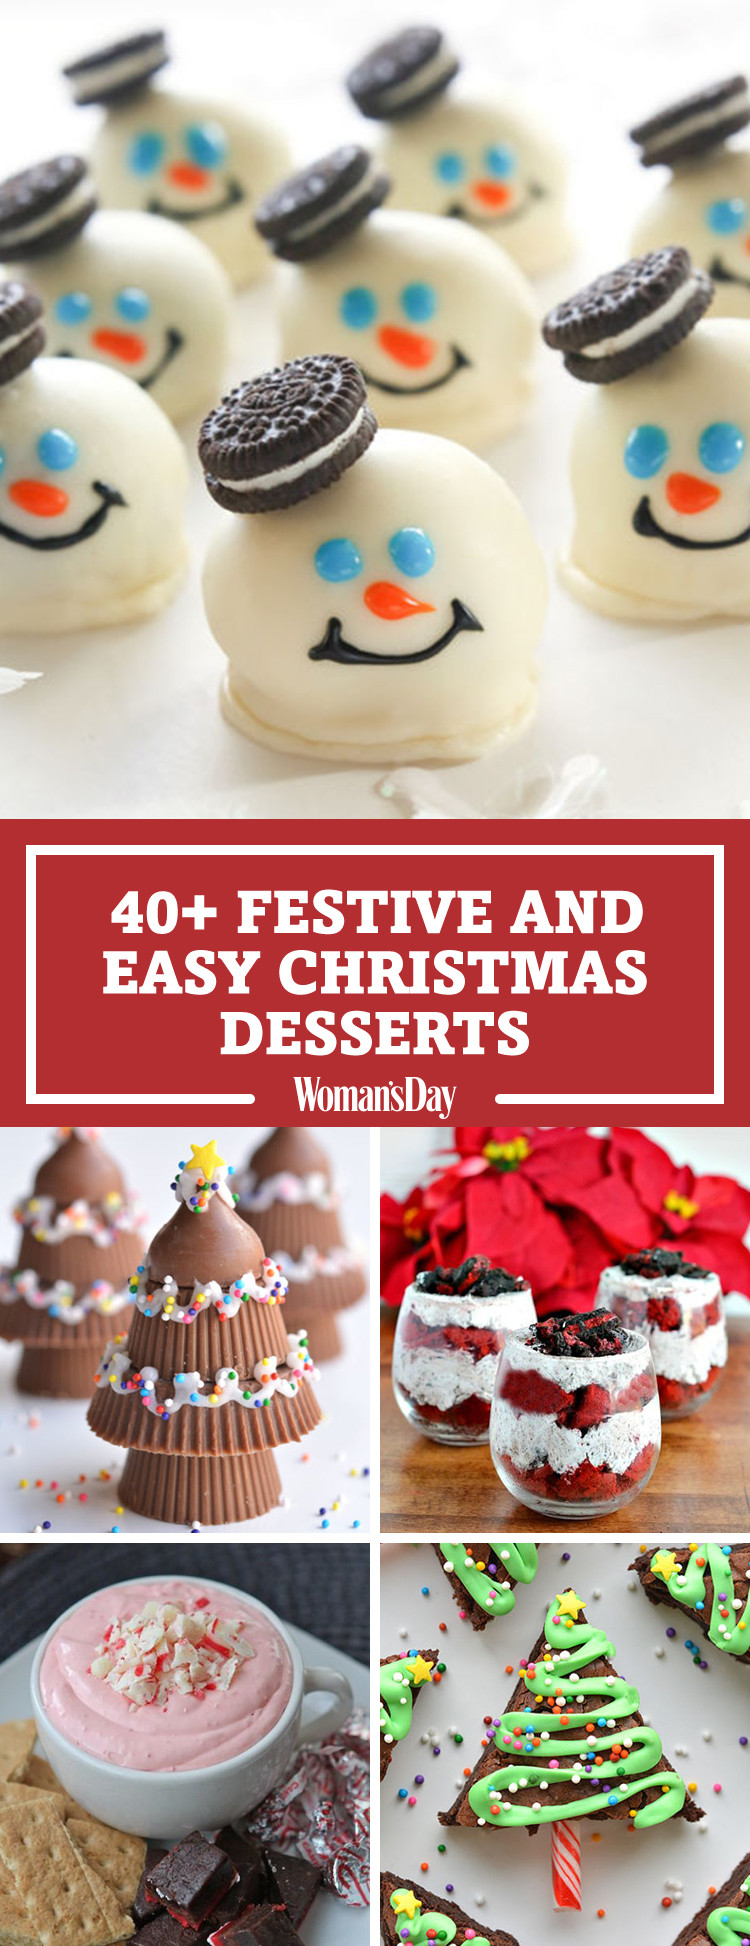 Pictures Of Christmas Desserts  57 Easy Christmas Dessert Recipes Best Ideas for Fun